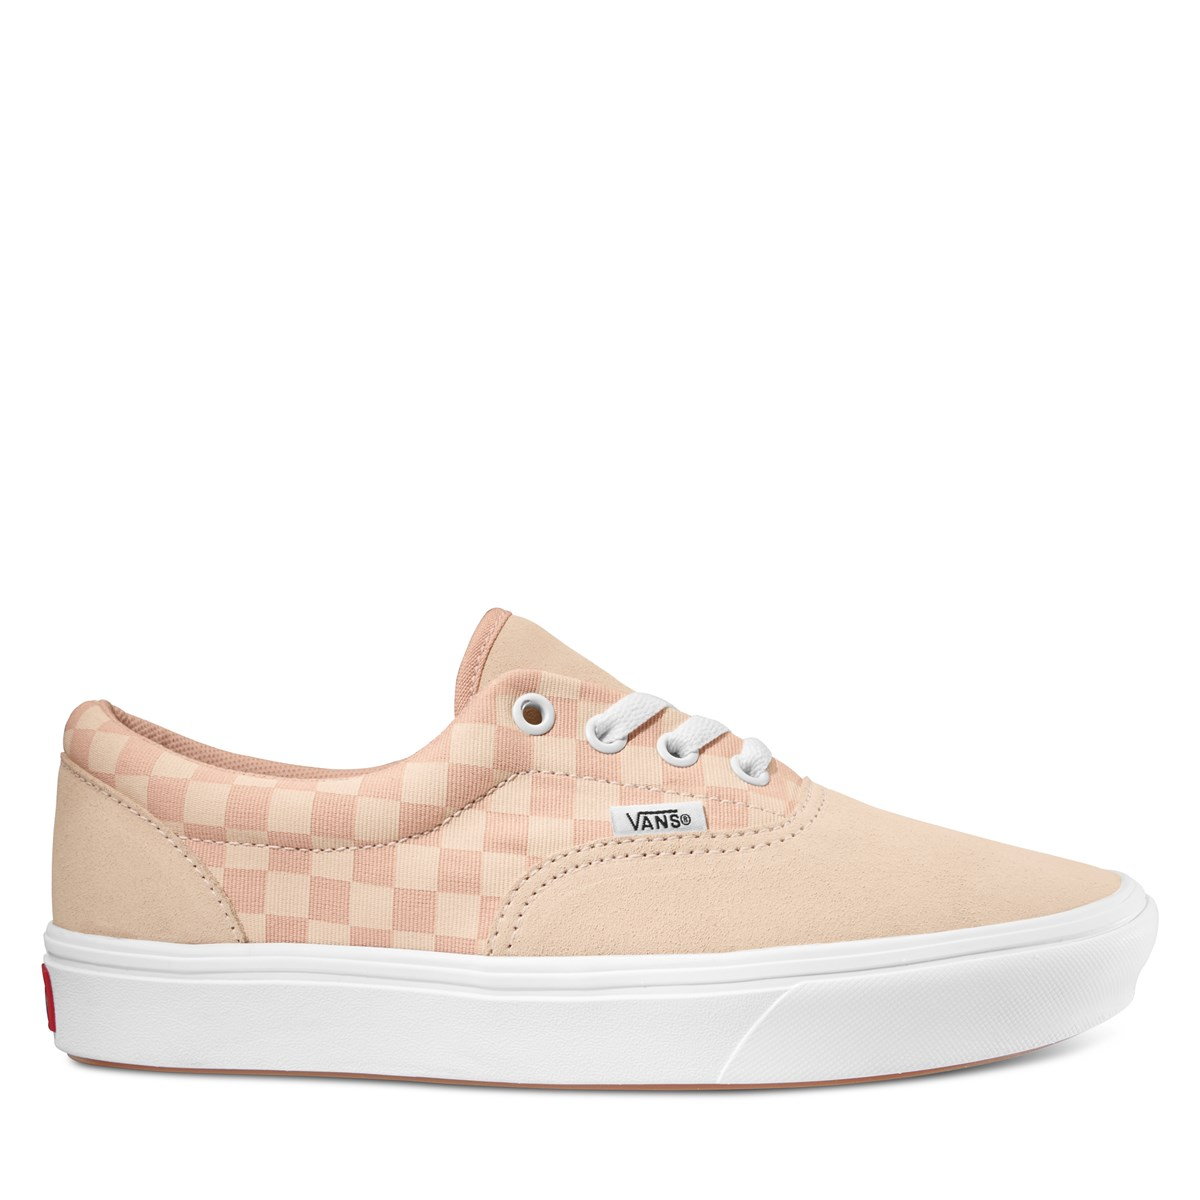 Women's ComfyCush Checkerboard Era Sneakers in Pink